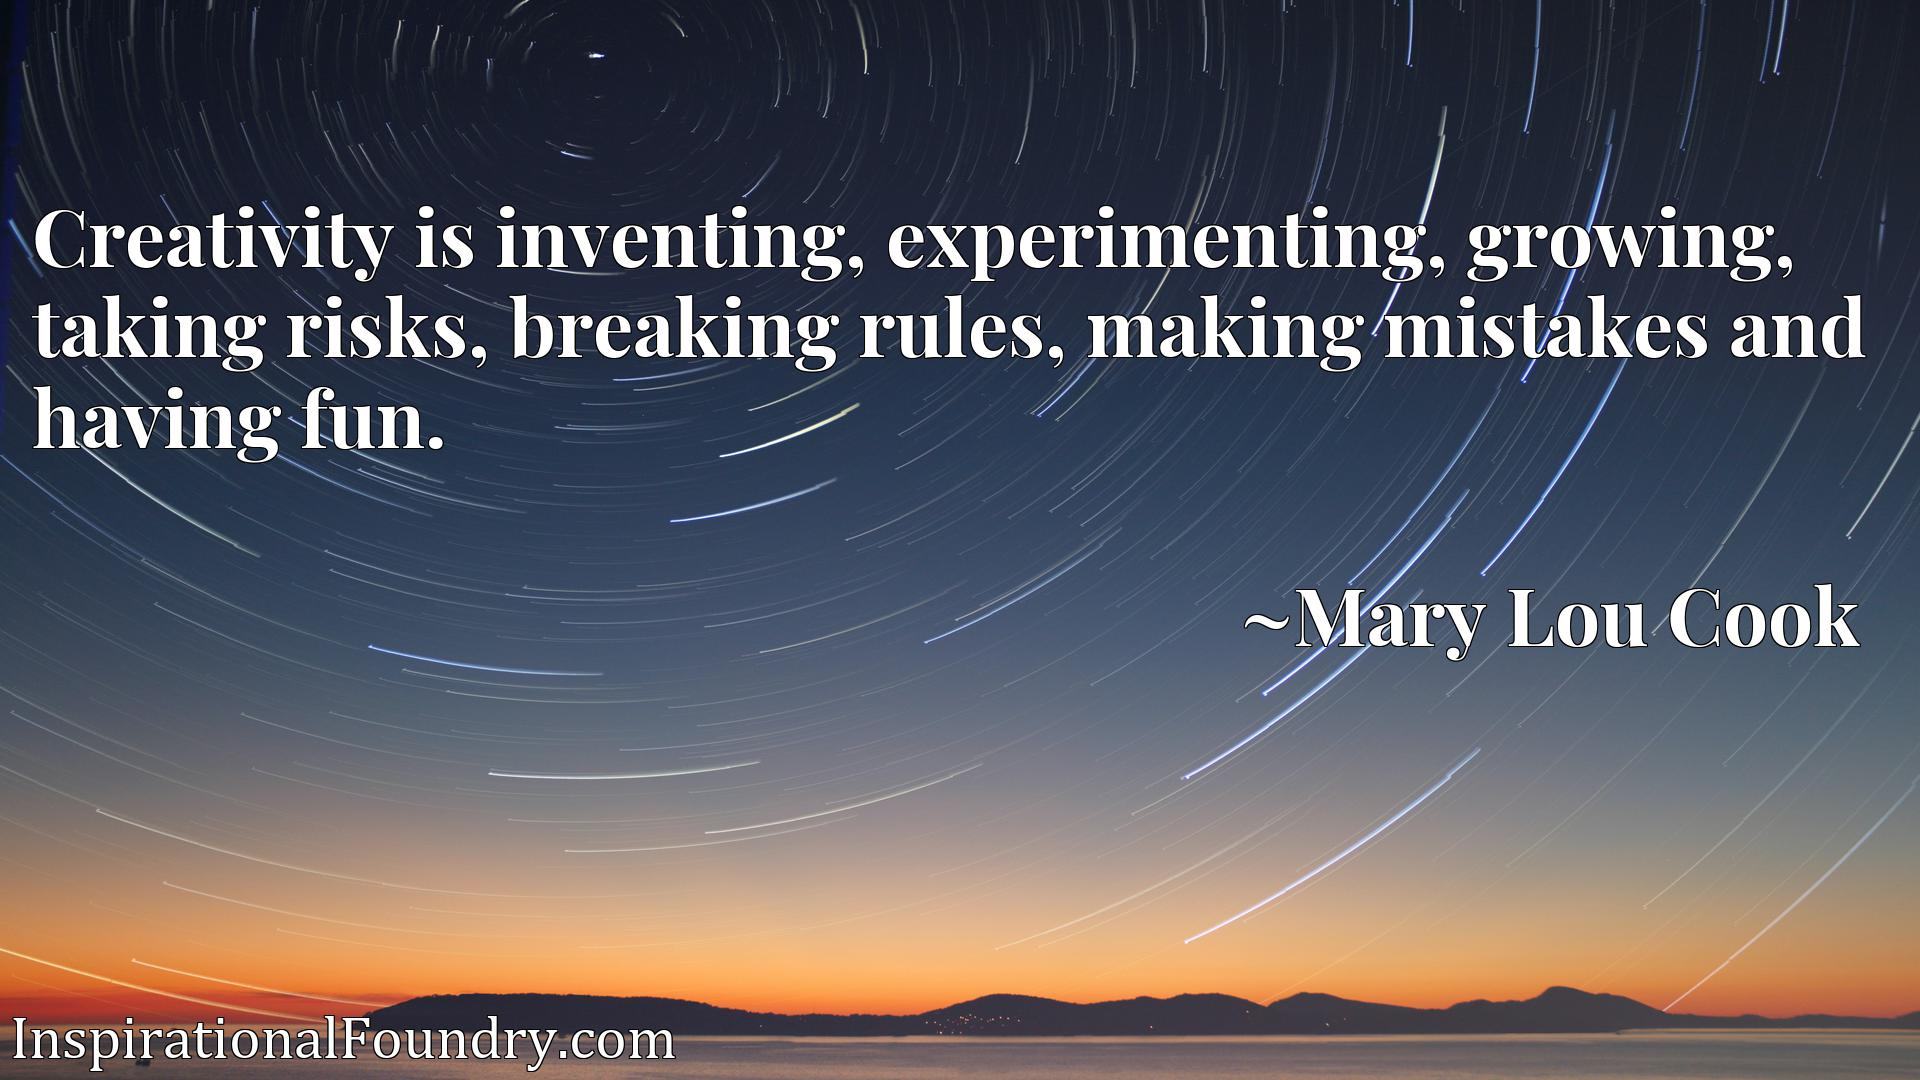 Creativity is inventing, experimenting, growing, taking risks, breaking rules, making mistakes and having fun.